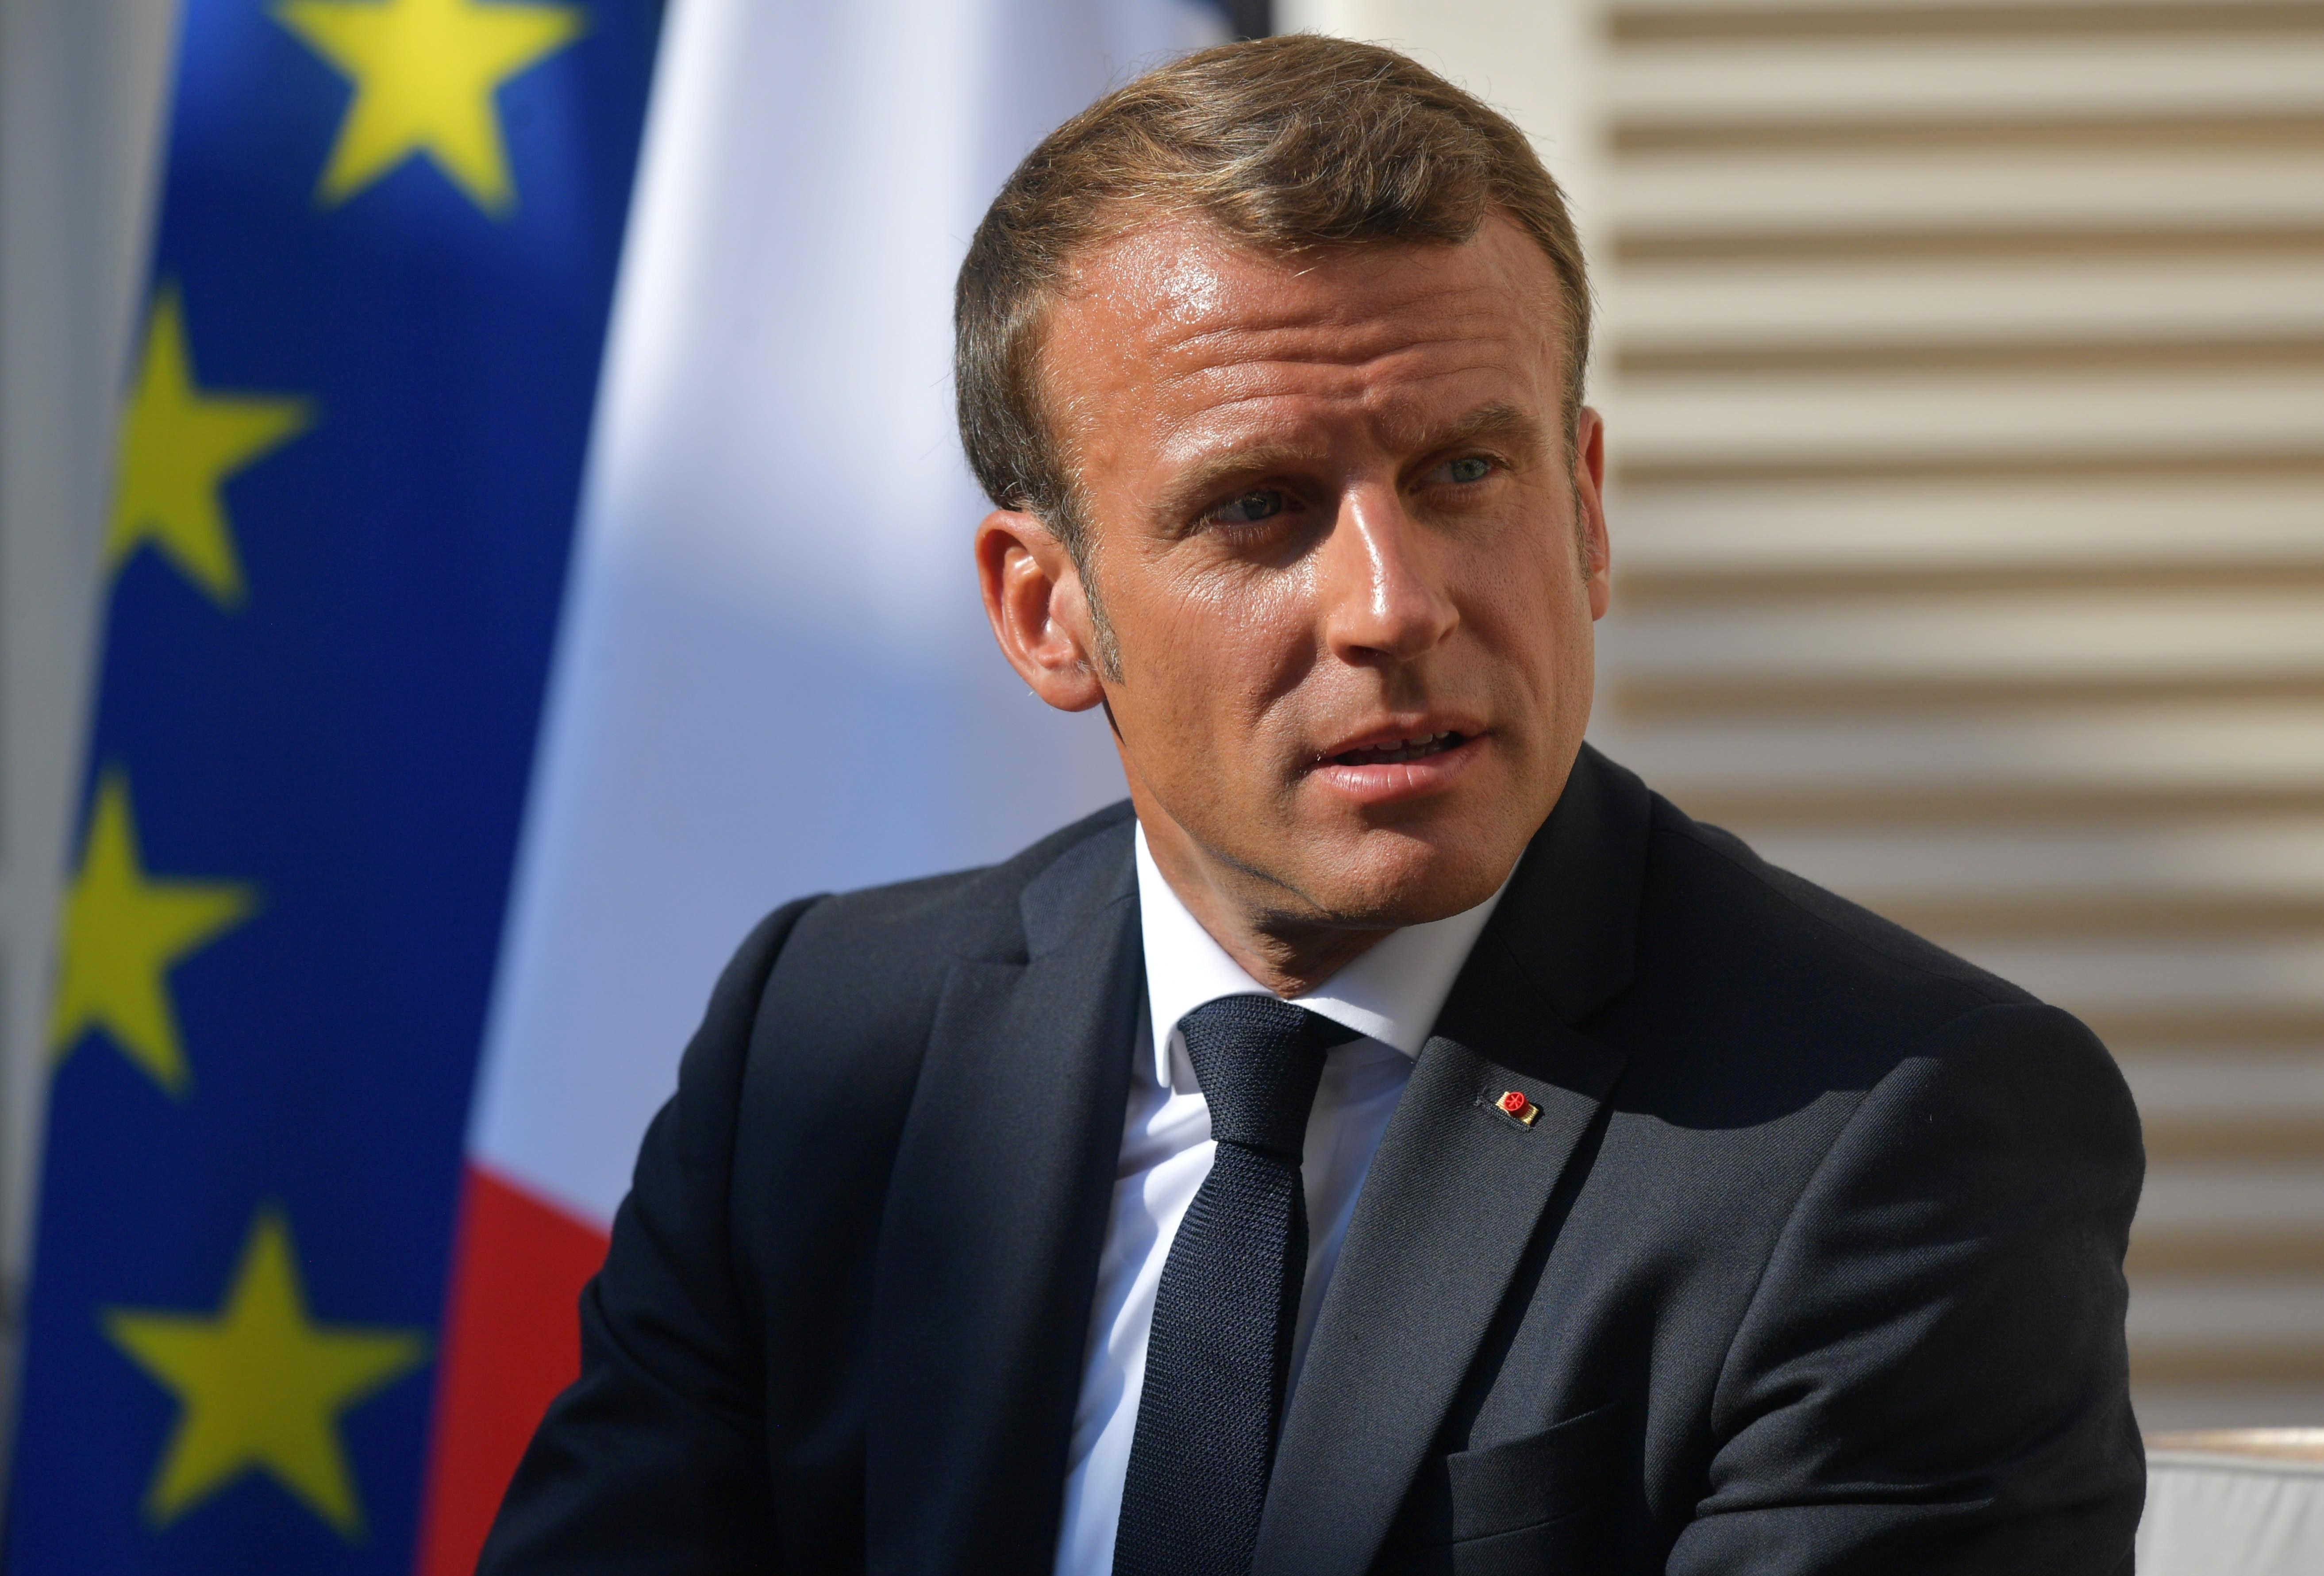 France's Macron says no-deal Brexit would be Britain's fault